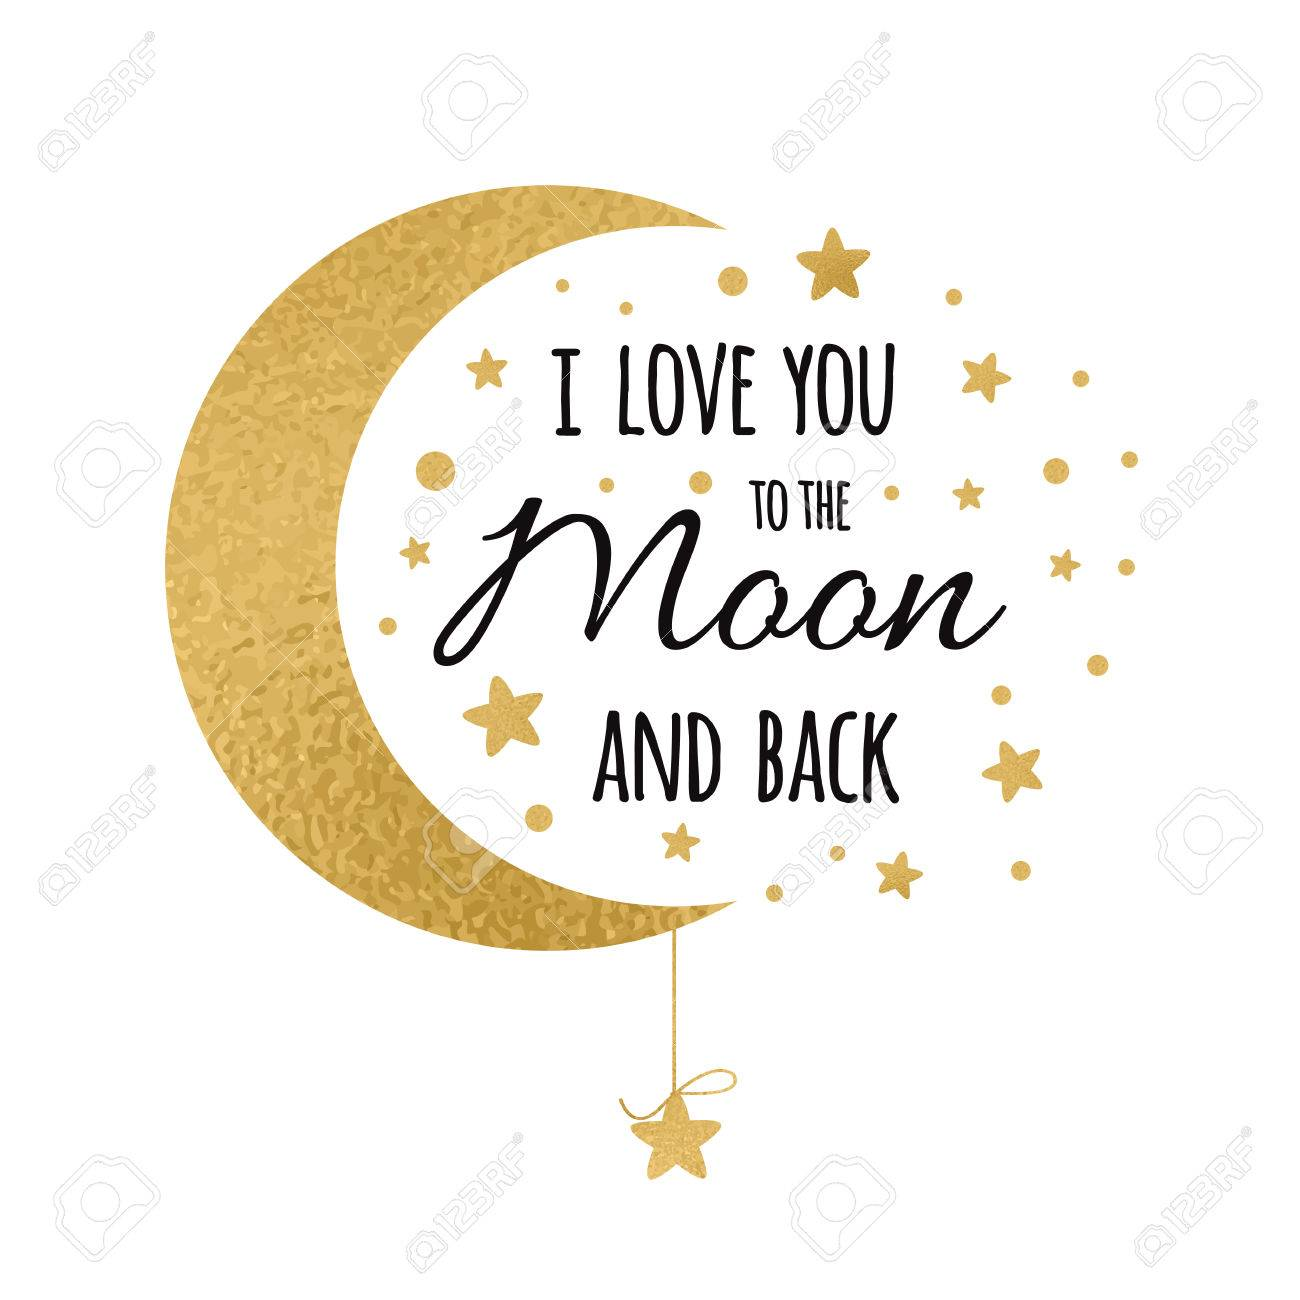 I Love You To The Moon And Back Handwritten Inspirational Phrase